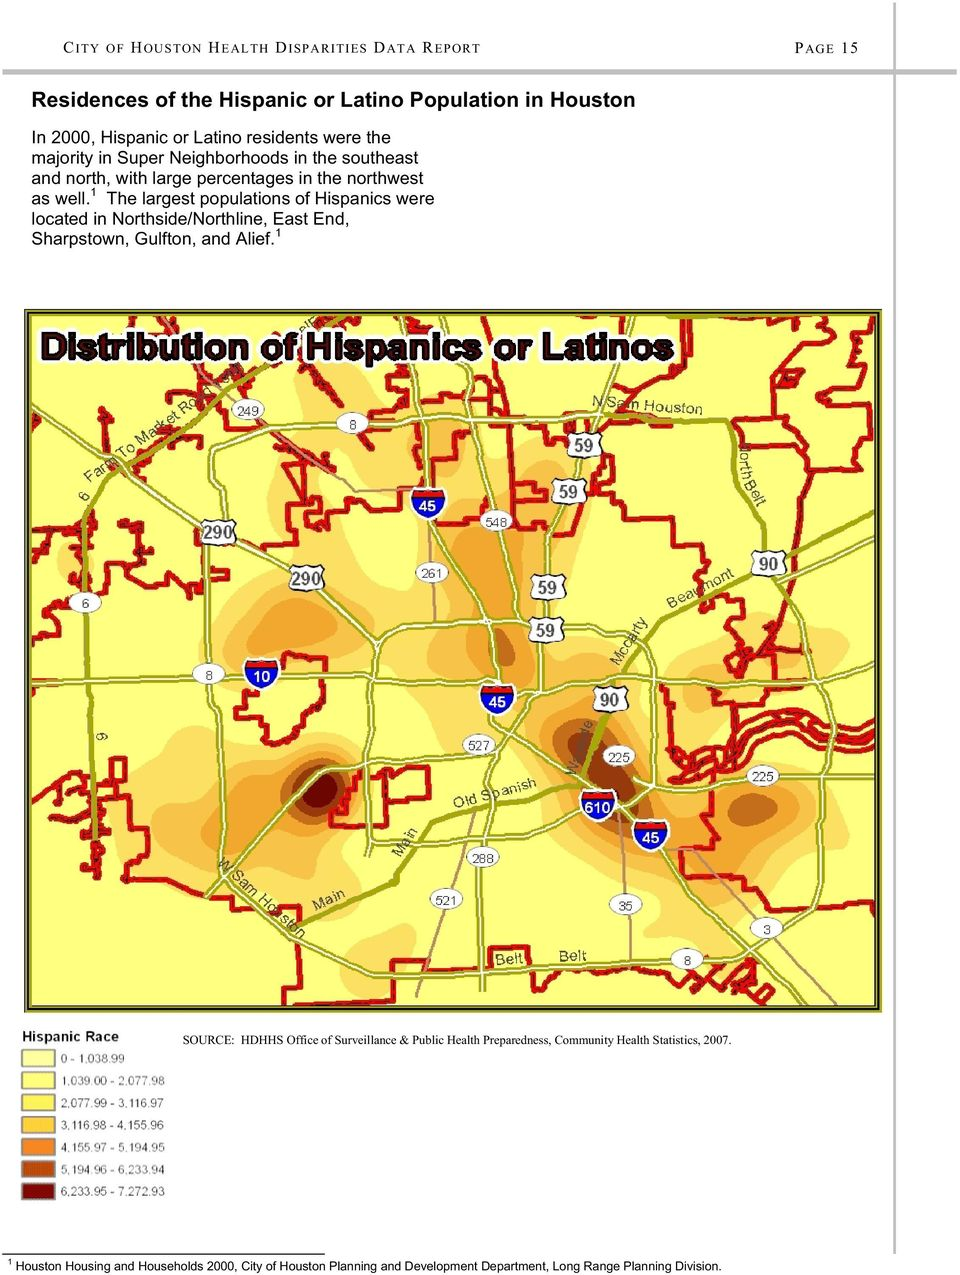 1 The largest populations of Hispanics were located in Northside/Northline, East End, Sharpstown, Gulfton, and Alief.